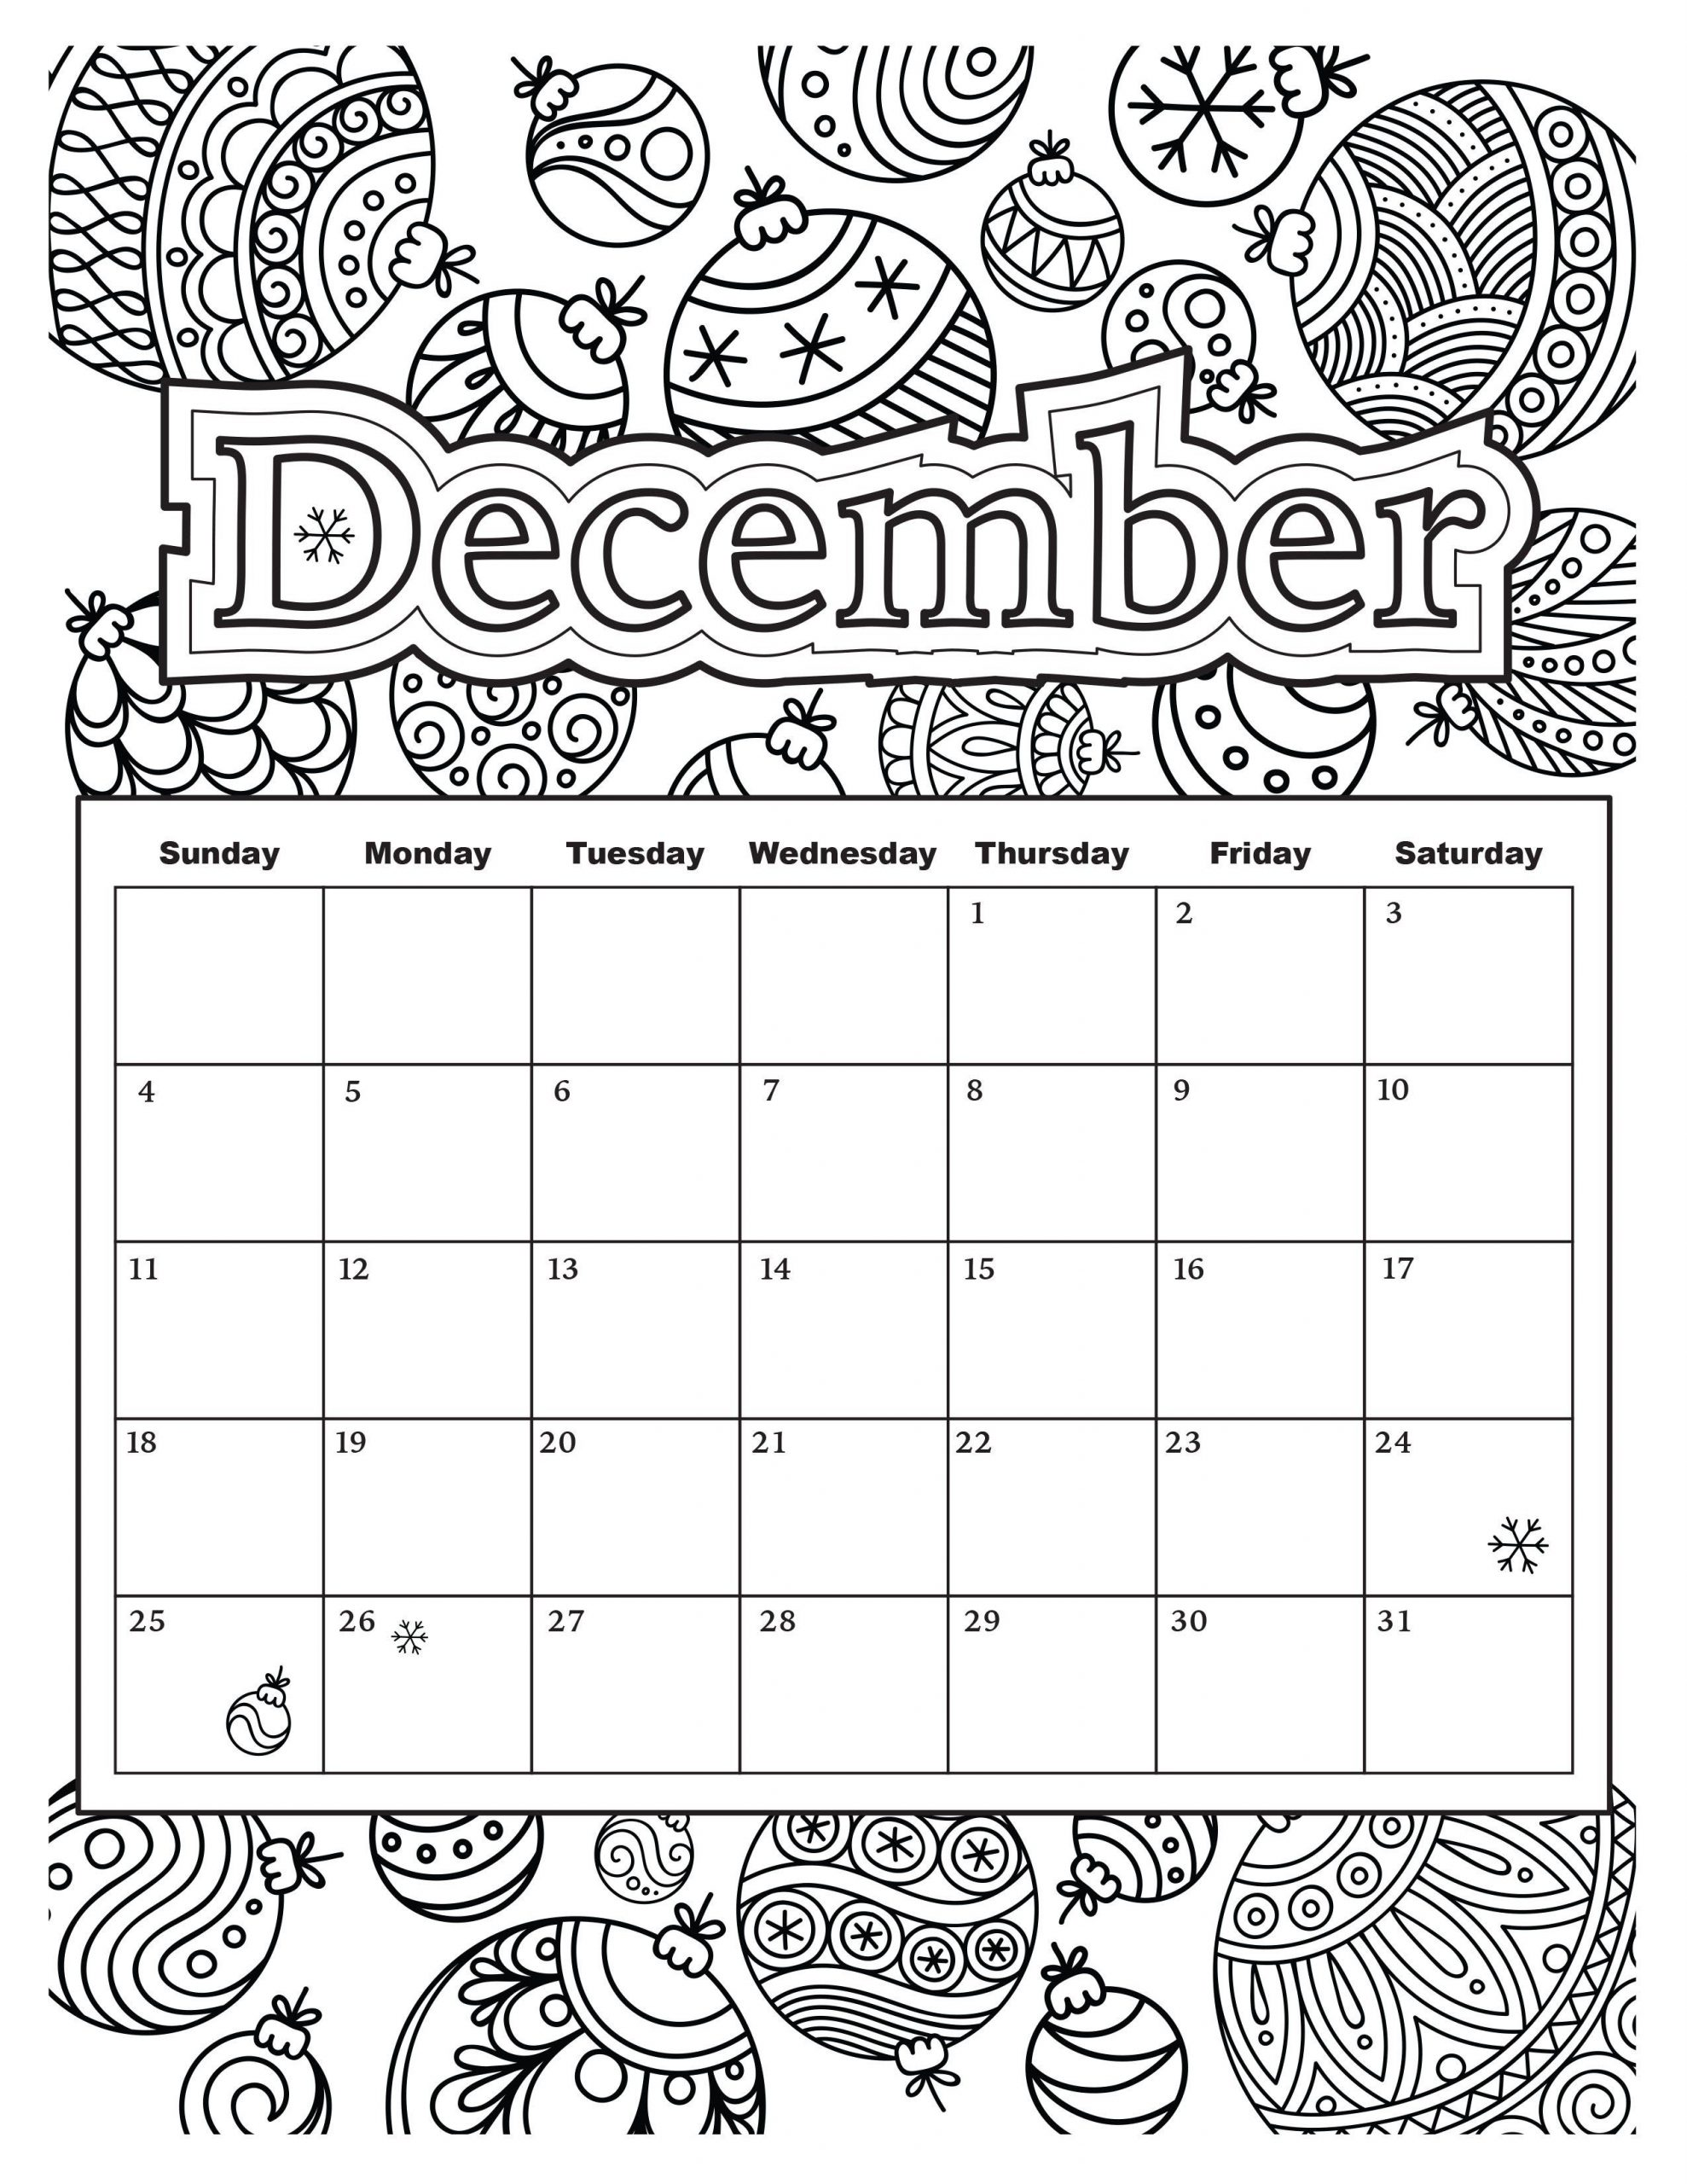 Added Jan. 9: Start Your Year Off Right With This Colorable with 2020 Printable Yearly Colouring Calendar